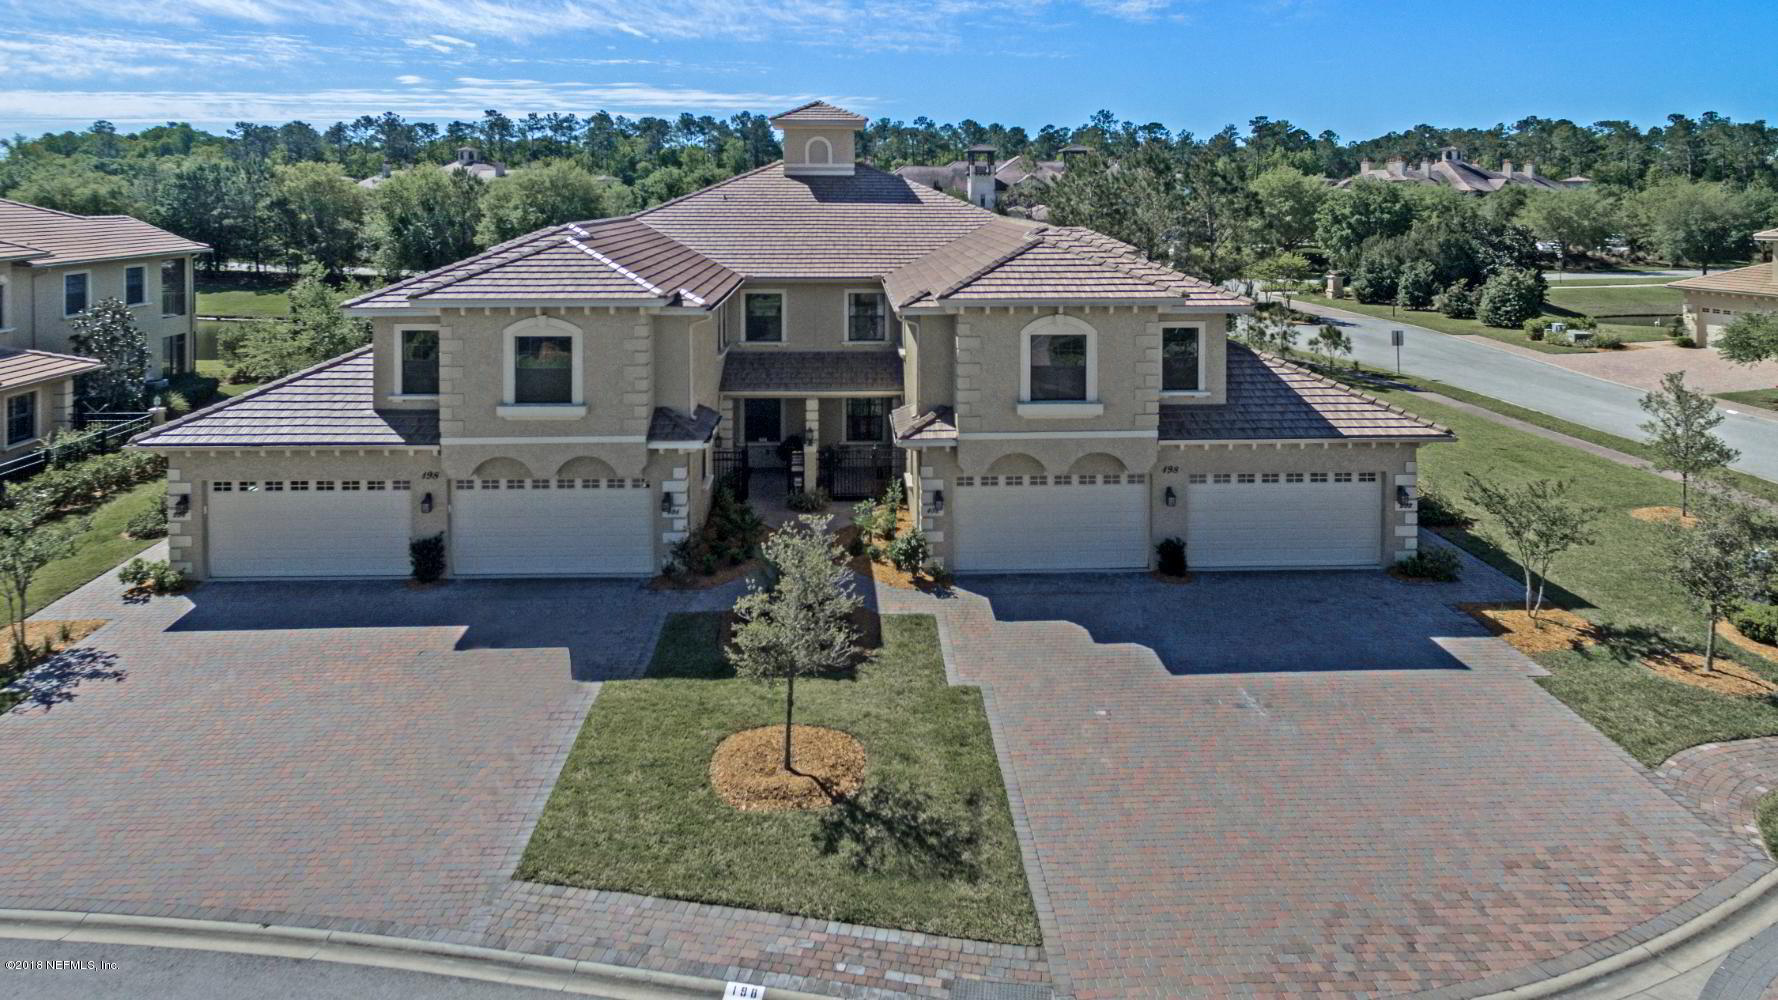 123 LATERRA LINKS, ST AUGUSTINE, FLORIDA 32092, 3 Bedrooms Bedrooms, ,3 BathroomsBathrooms,Condo,For sale,LATERRA LINKS,1010185